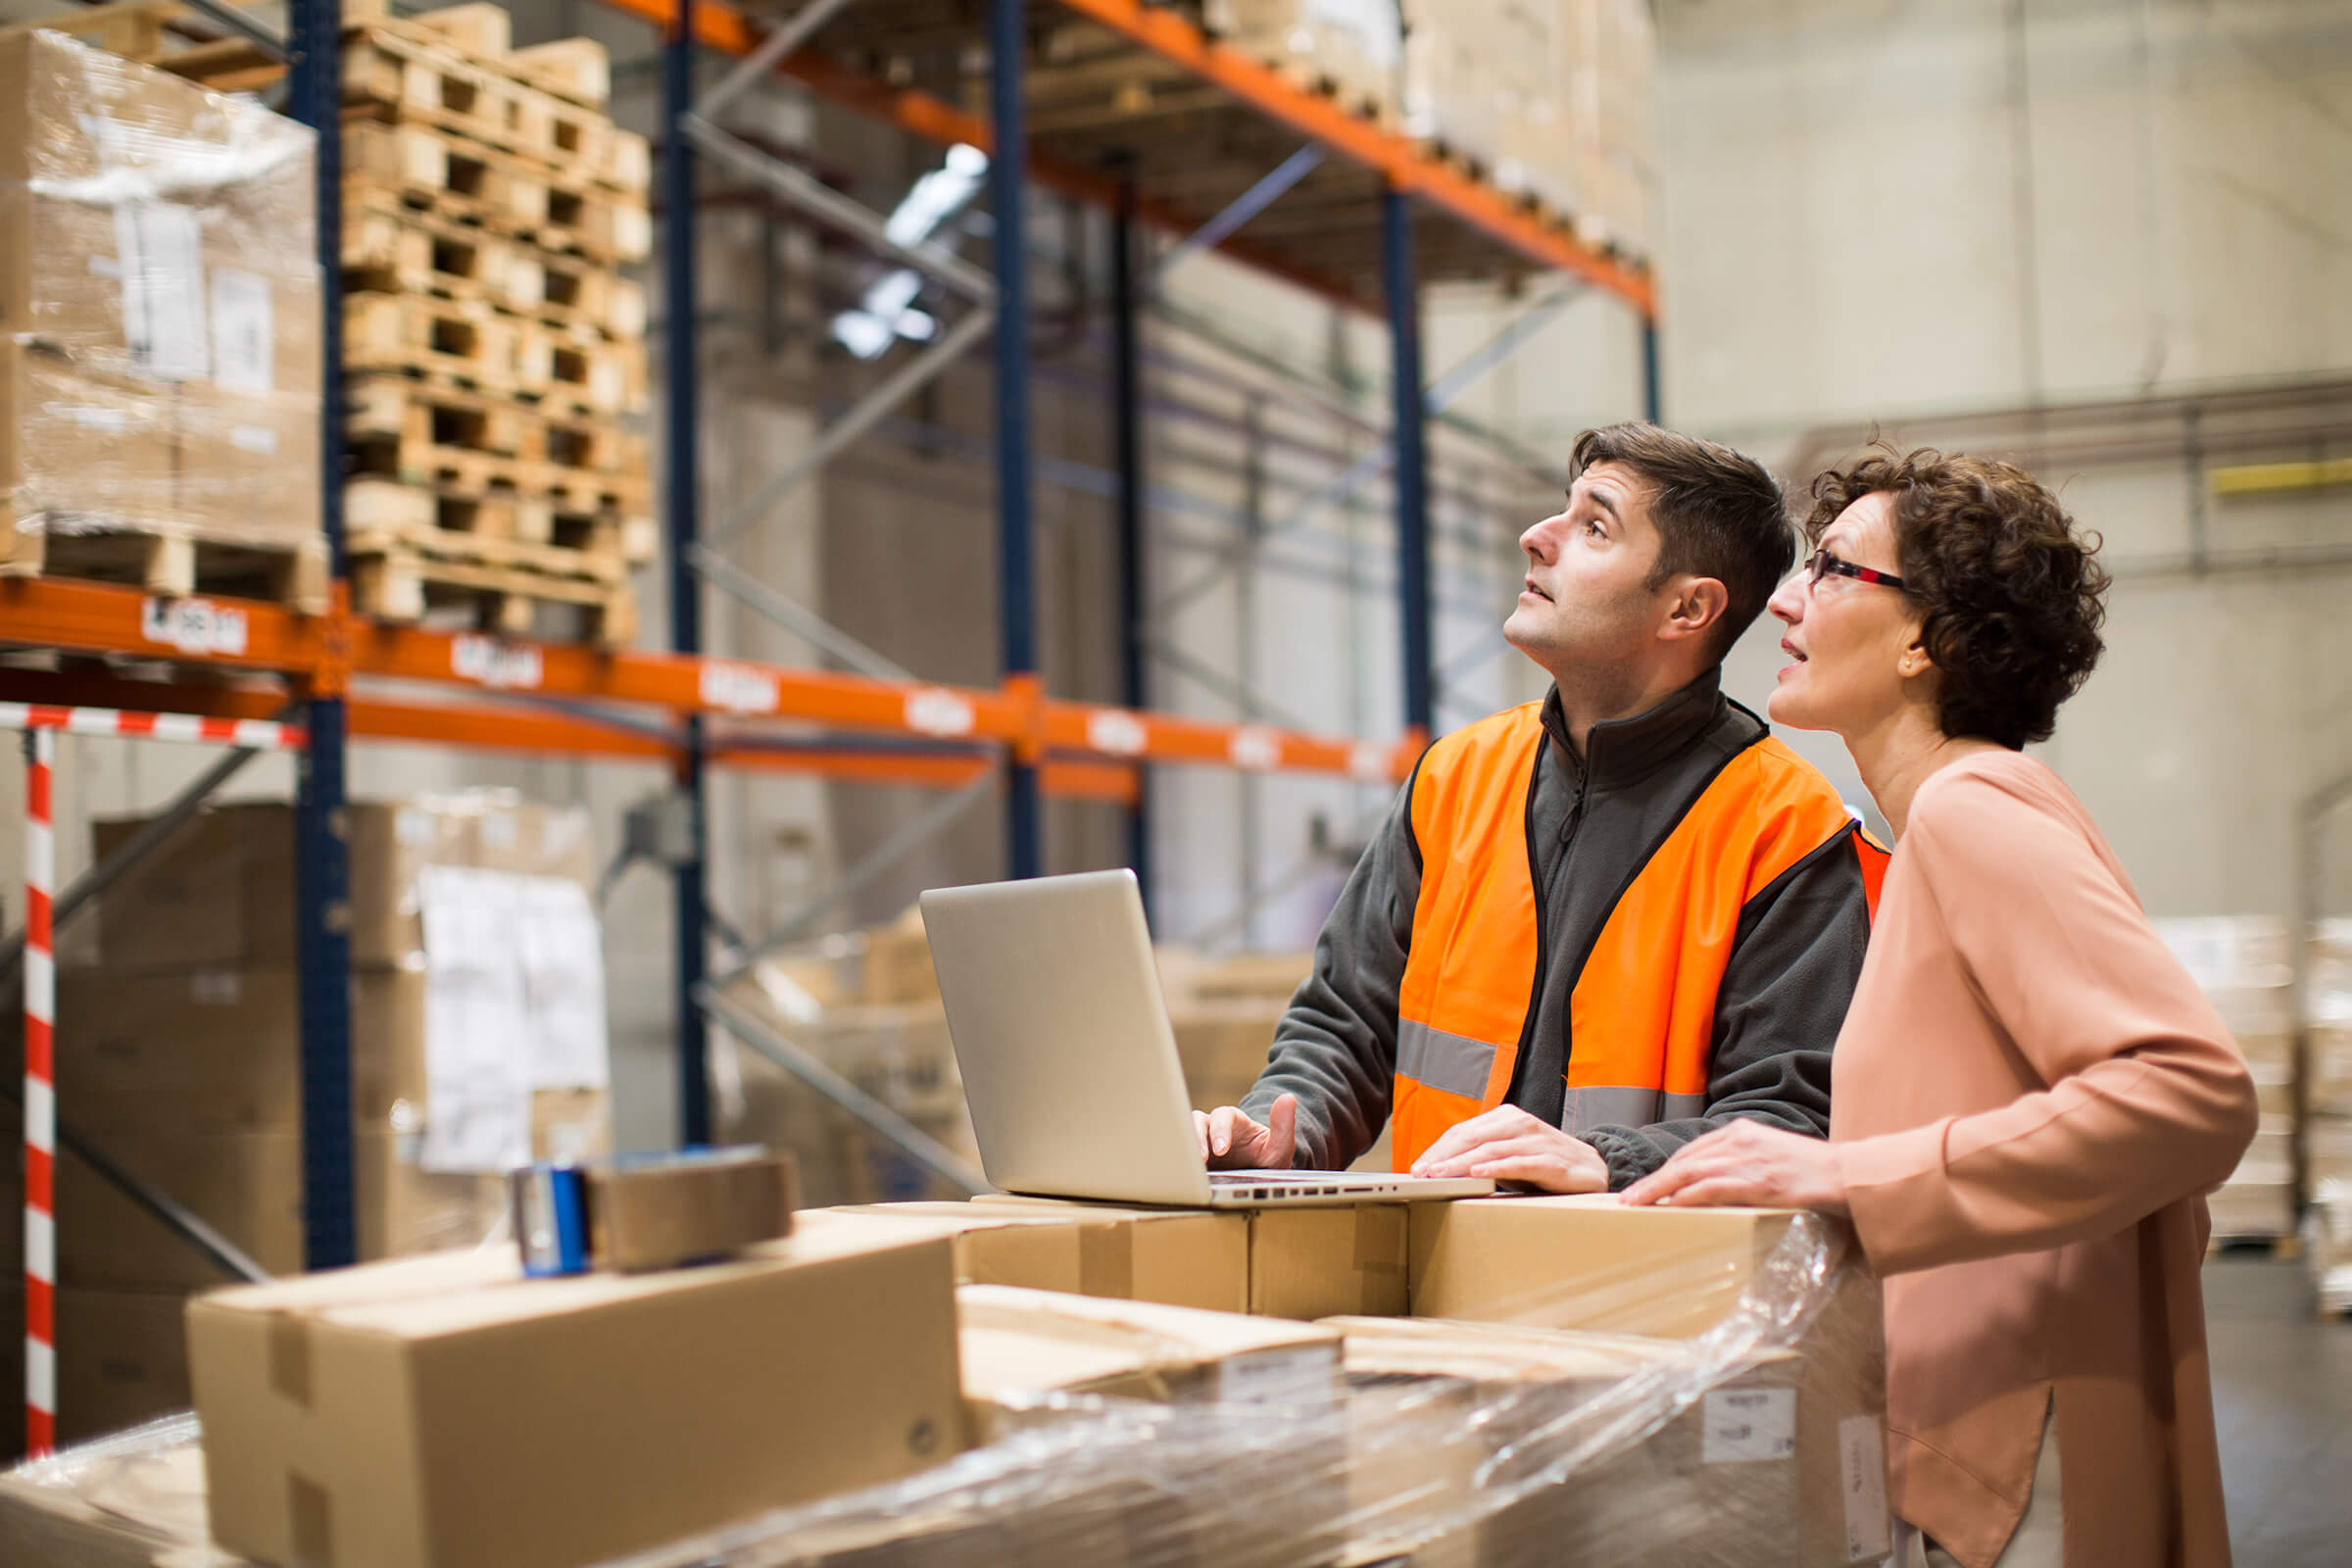 Two warehouse workers with a laptop assessing supplies on warehouse shelves.